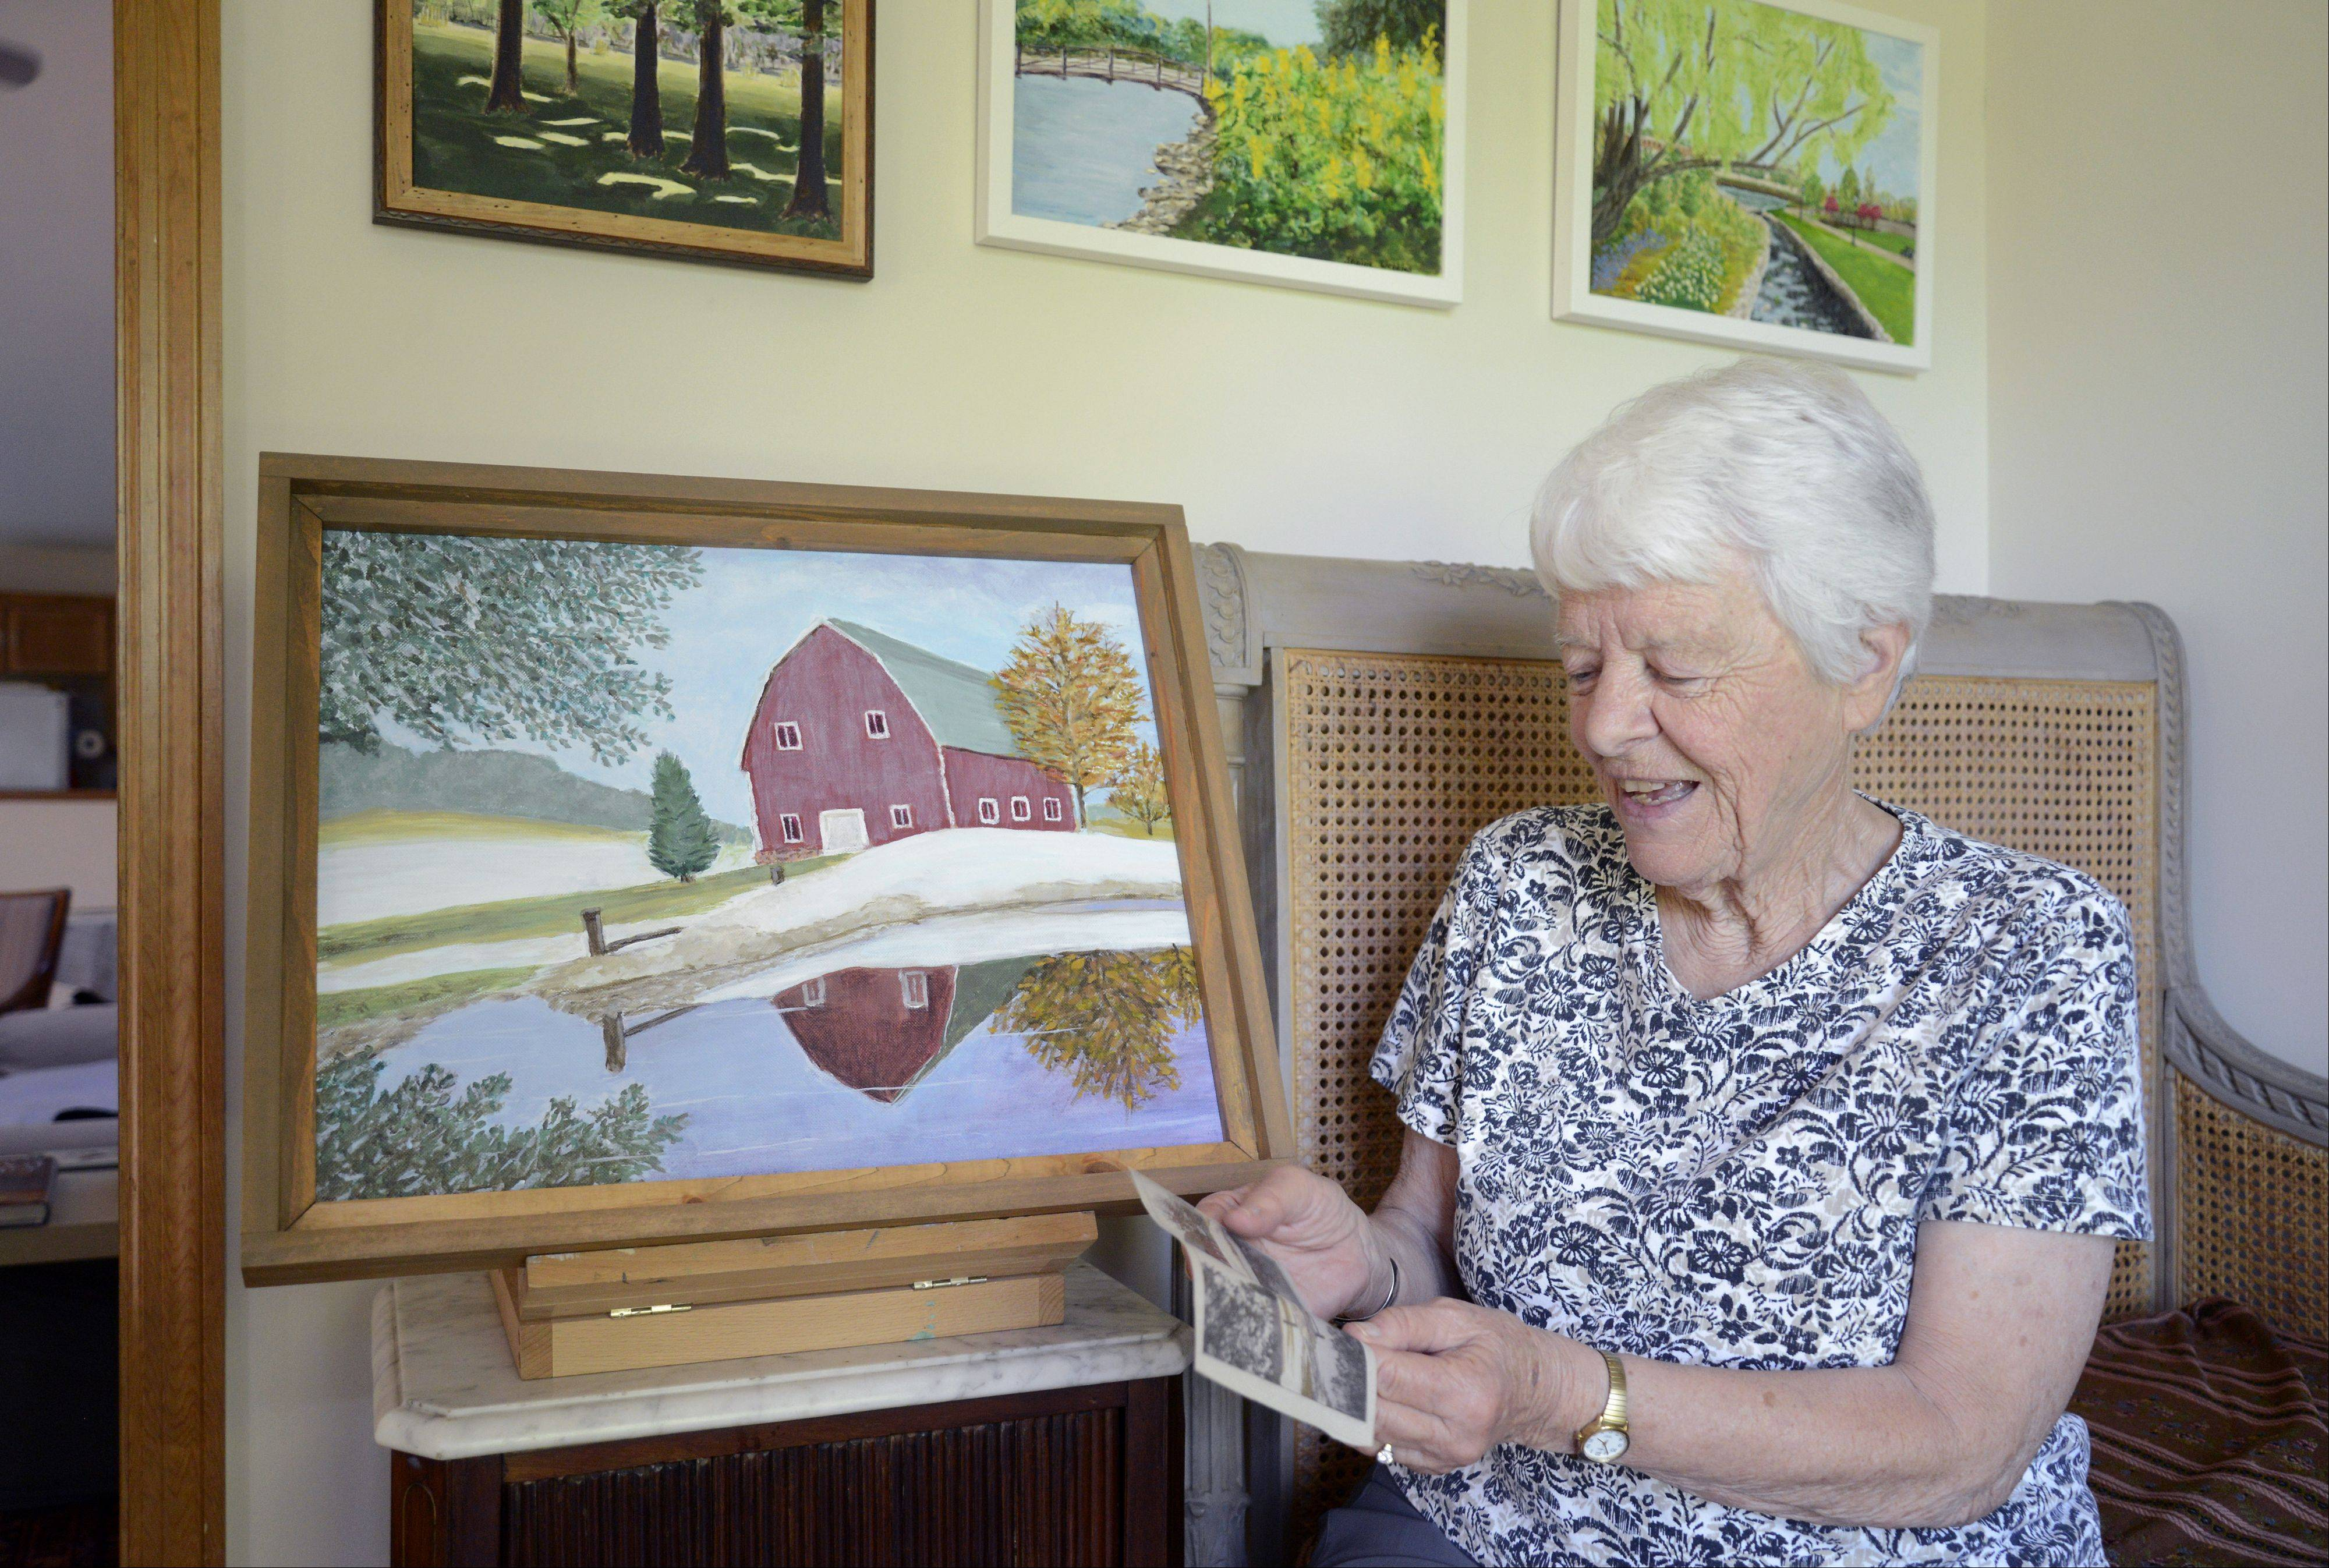 Laura Stoecker/lstoecker@dailyherald.com Janine Webbles of Batavia painted the barn at LeRoy Oakes Forest Preserve in St. Charles using a photograph by Daily Herald staff photographer, Laura Stoecker, as a guide. The original photo was taken on Feb. 17, 2011 -- after a big blizzard -- and was painted in the same year by Webbles. She is an avid lover of nature, especially wildflowers, and paintings of local forest preserves and the Batavia Riverwalk hang on her wall.